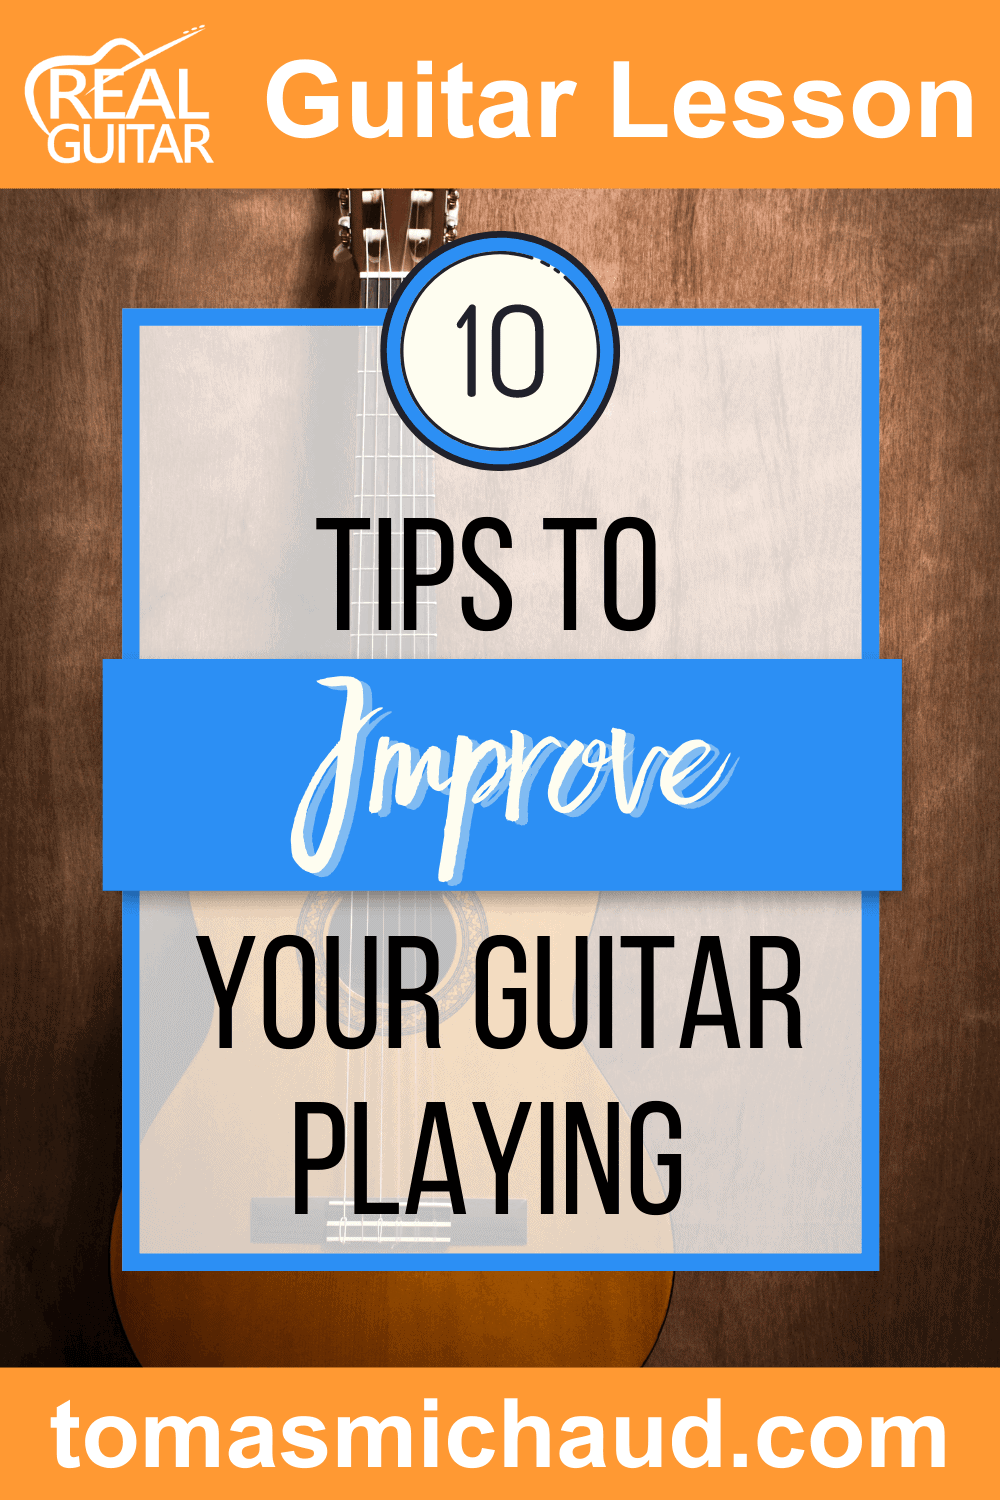 10 Tips to Improve Your Guitar Playing